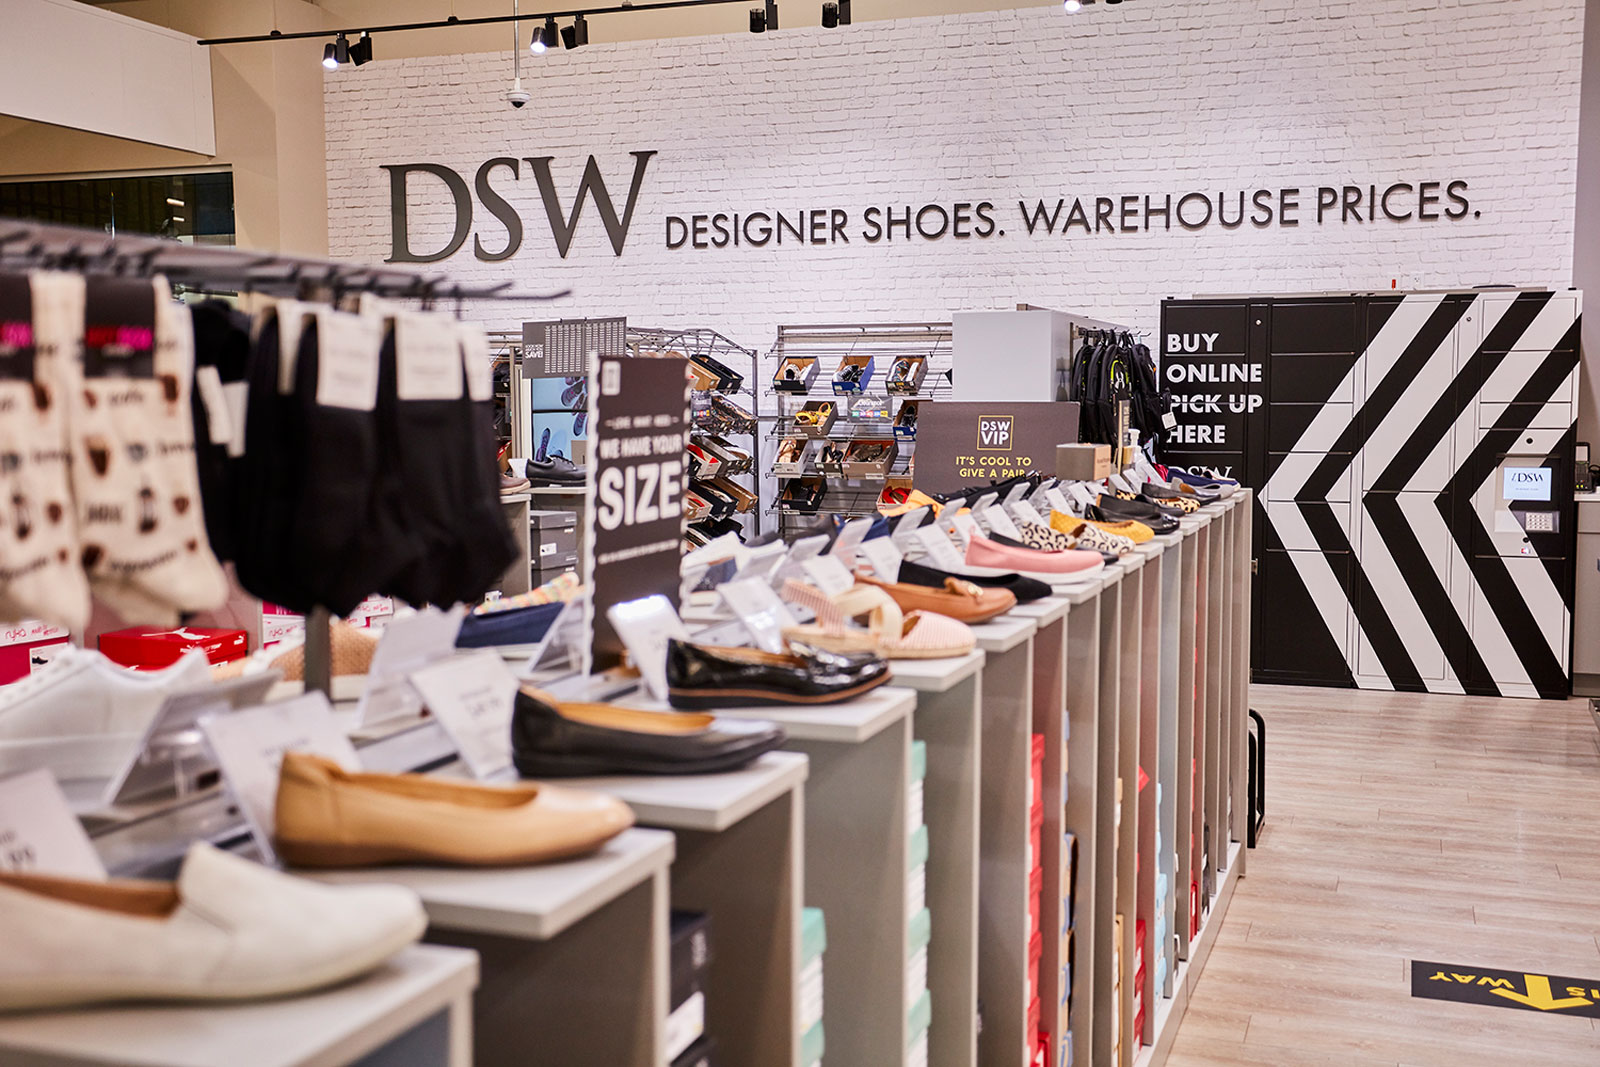 You can now buy shoes from DSW while grocery shopping at some Hy-Vee locations